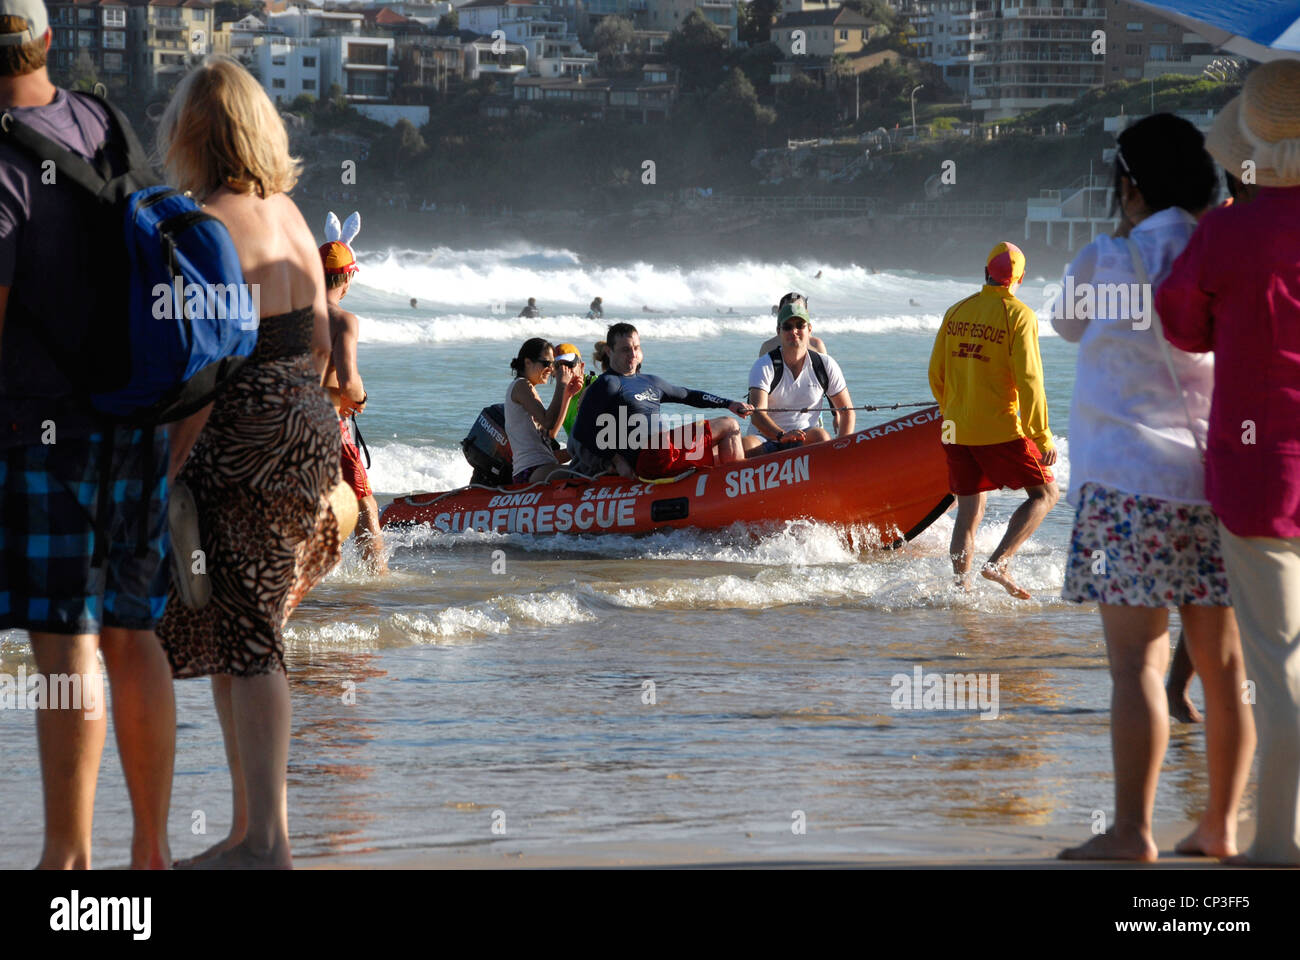 b9ba4687d94 Lifeguards with rescue boat on Bondi Beach Sydney s premier surfing and  leisure beach on a busy summer day. Sydney